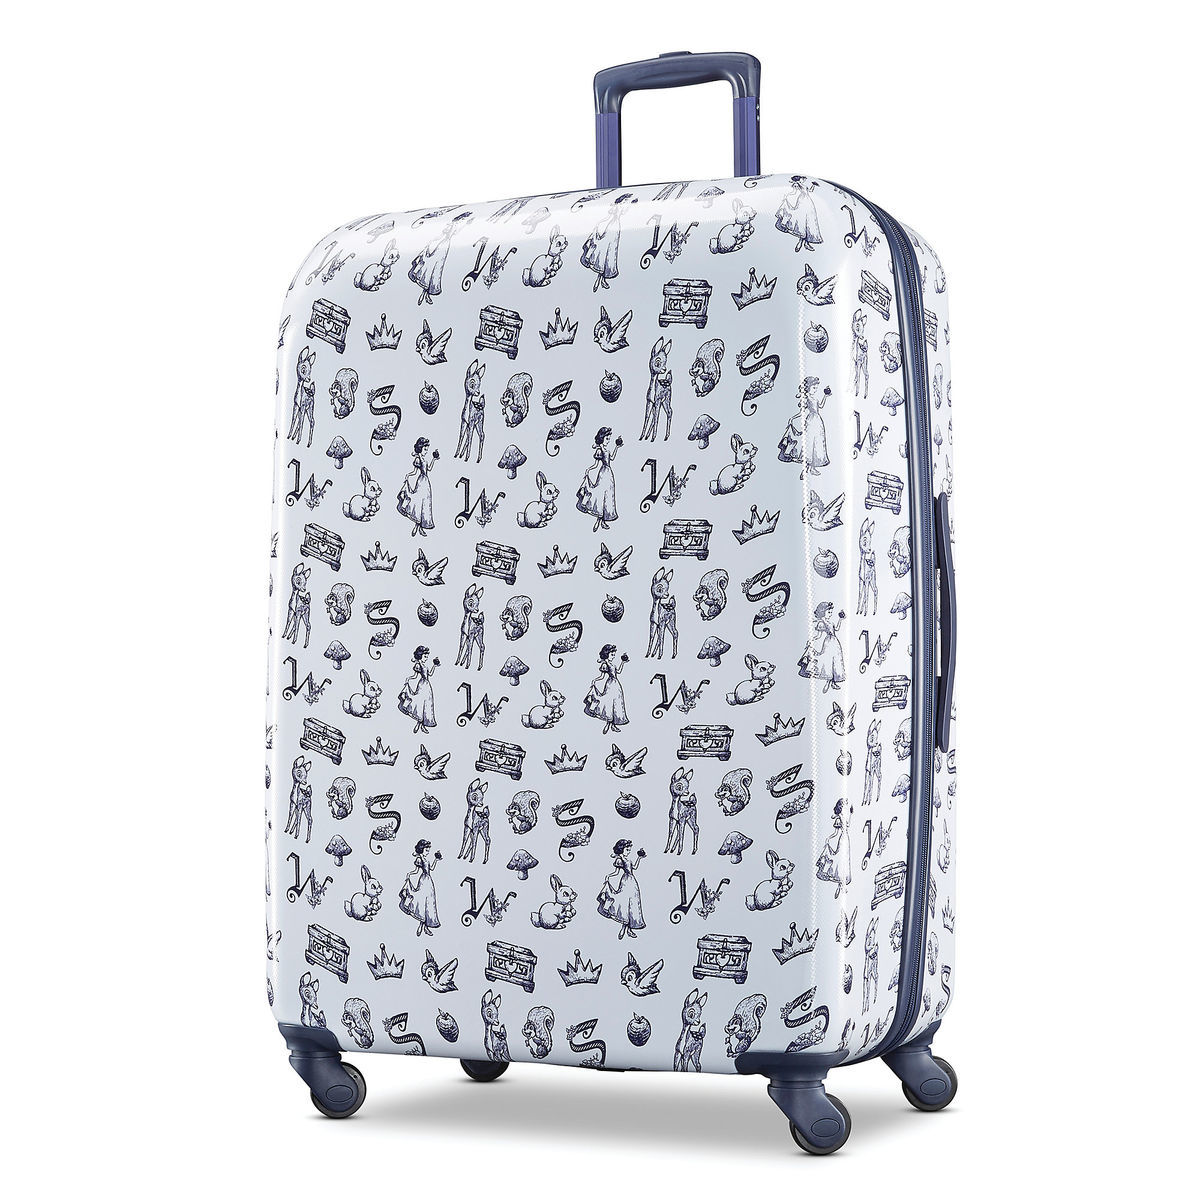 Disney Luggage for Your Summer Vacation 3